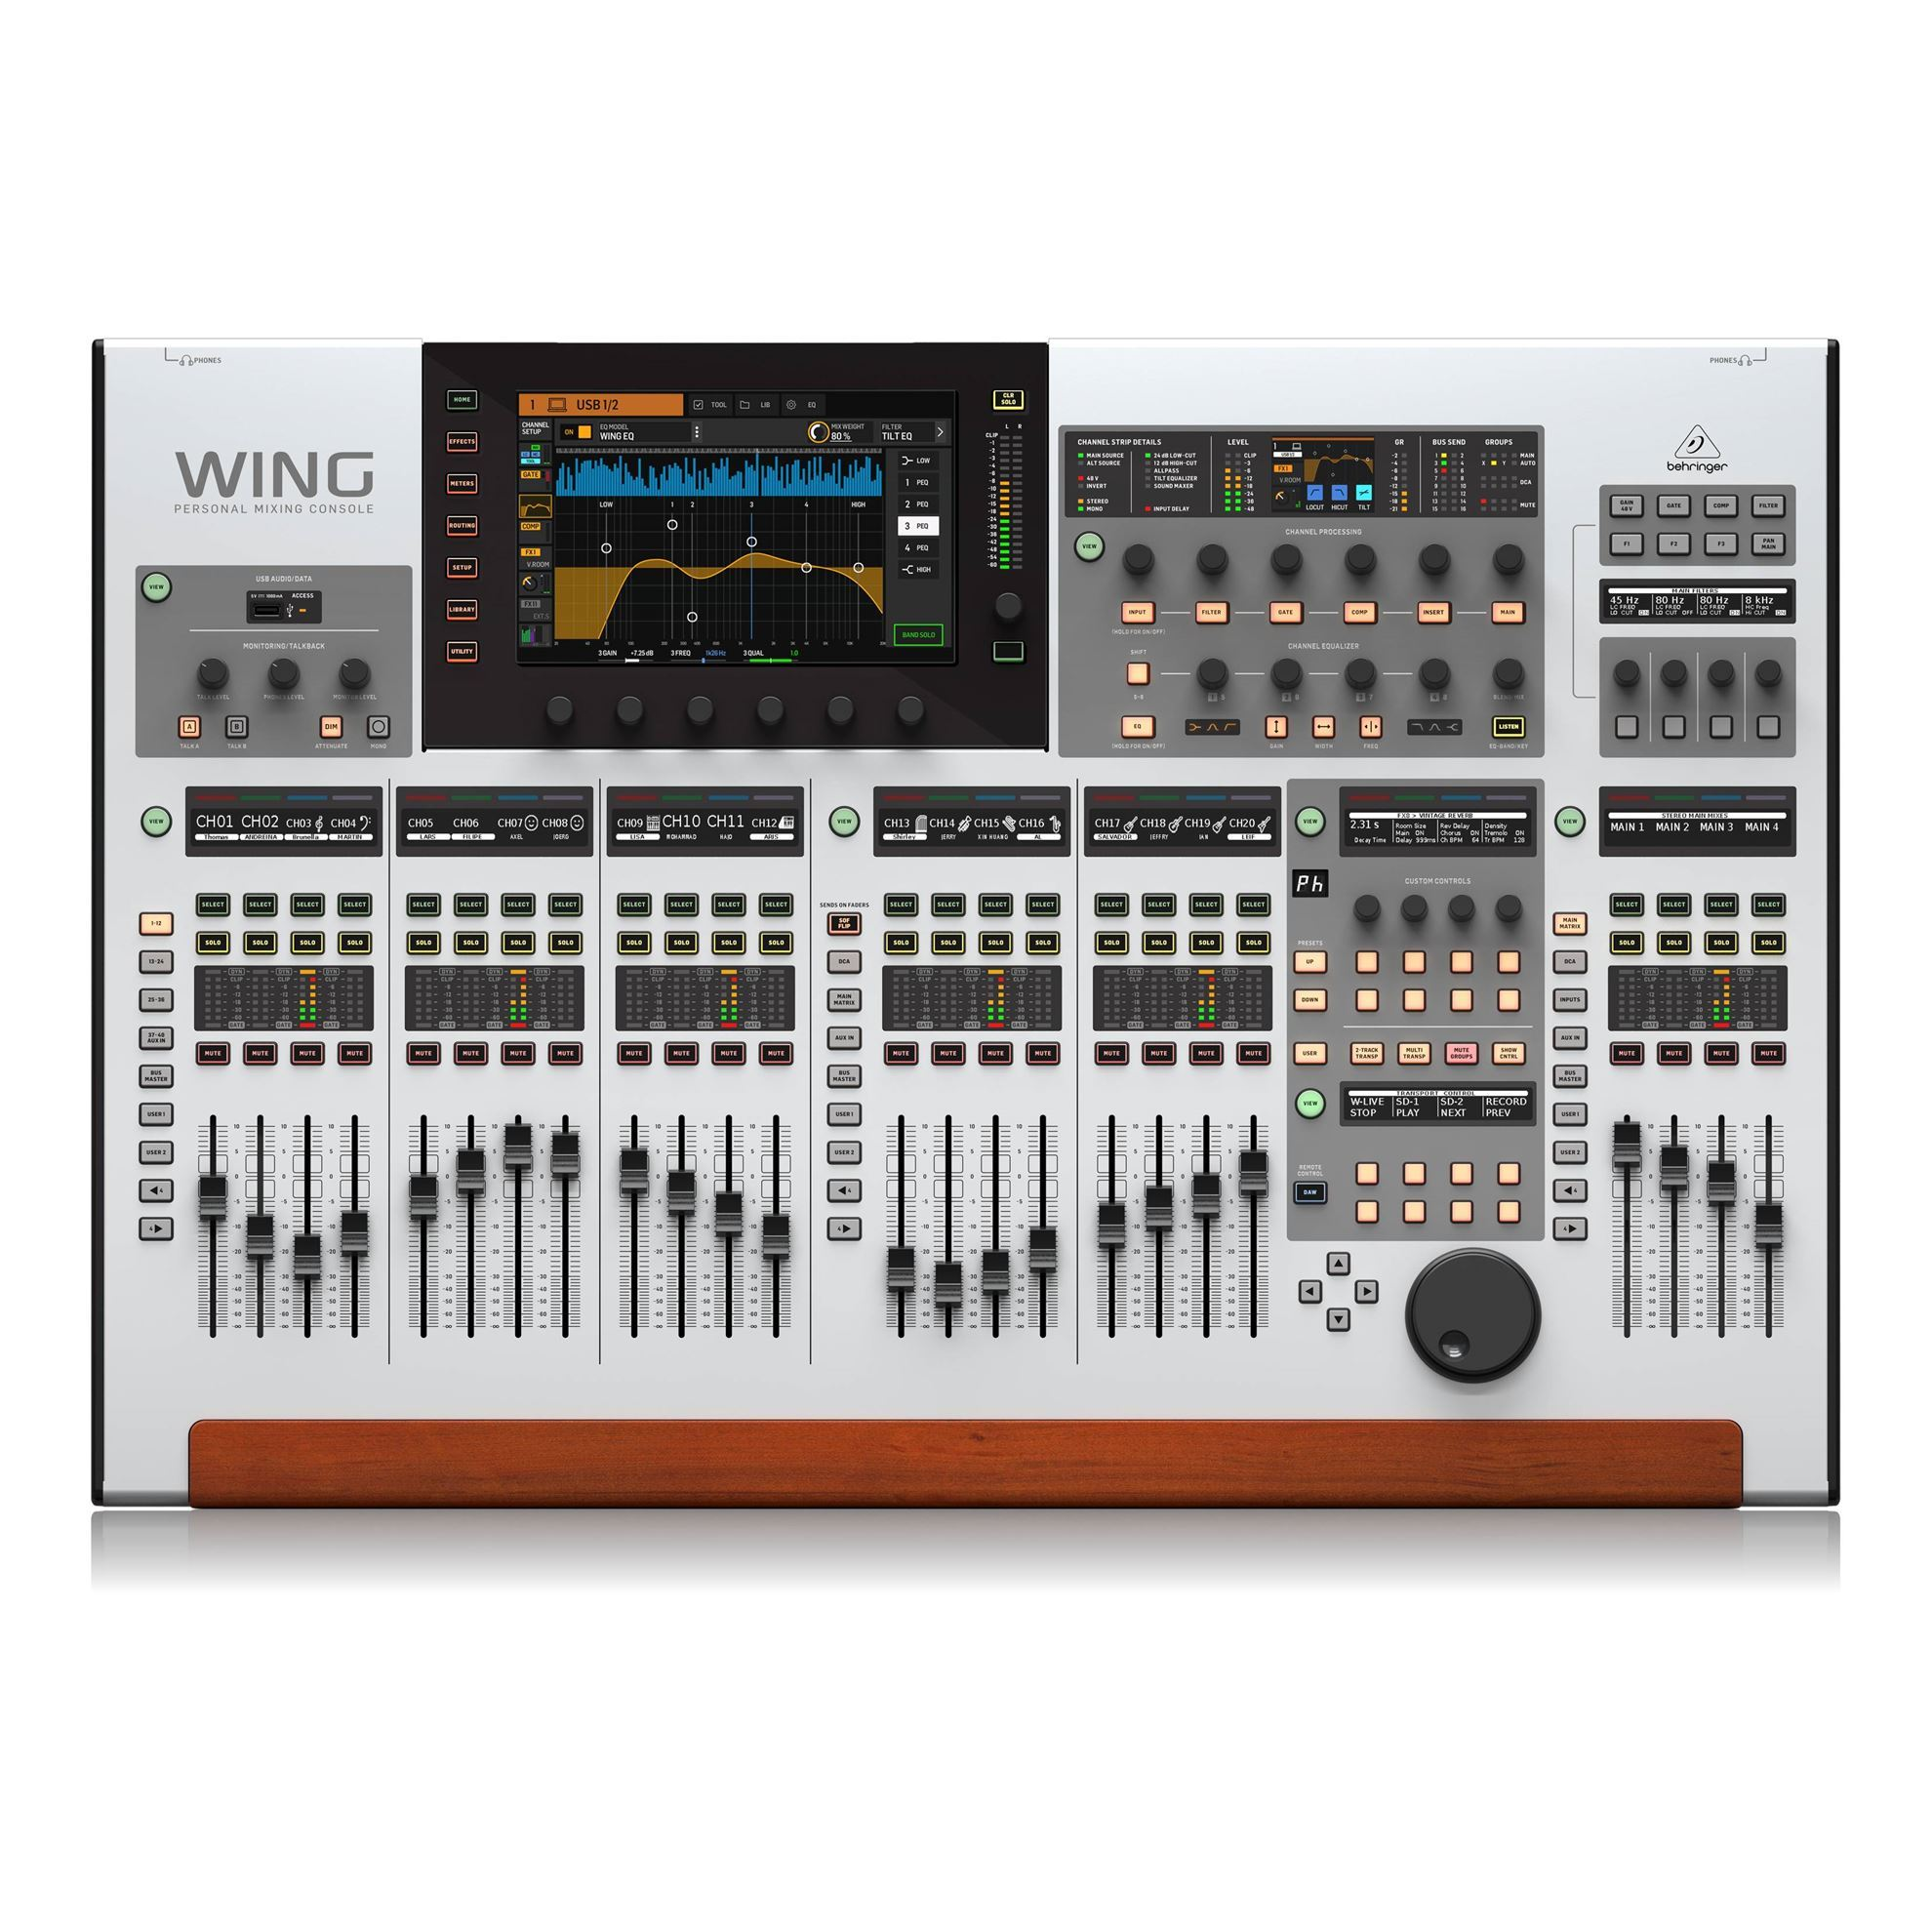 Behringer Wing Digital Mixing Console - Top